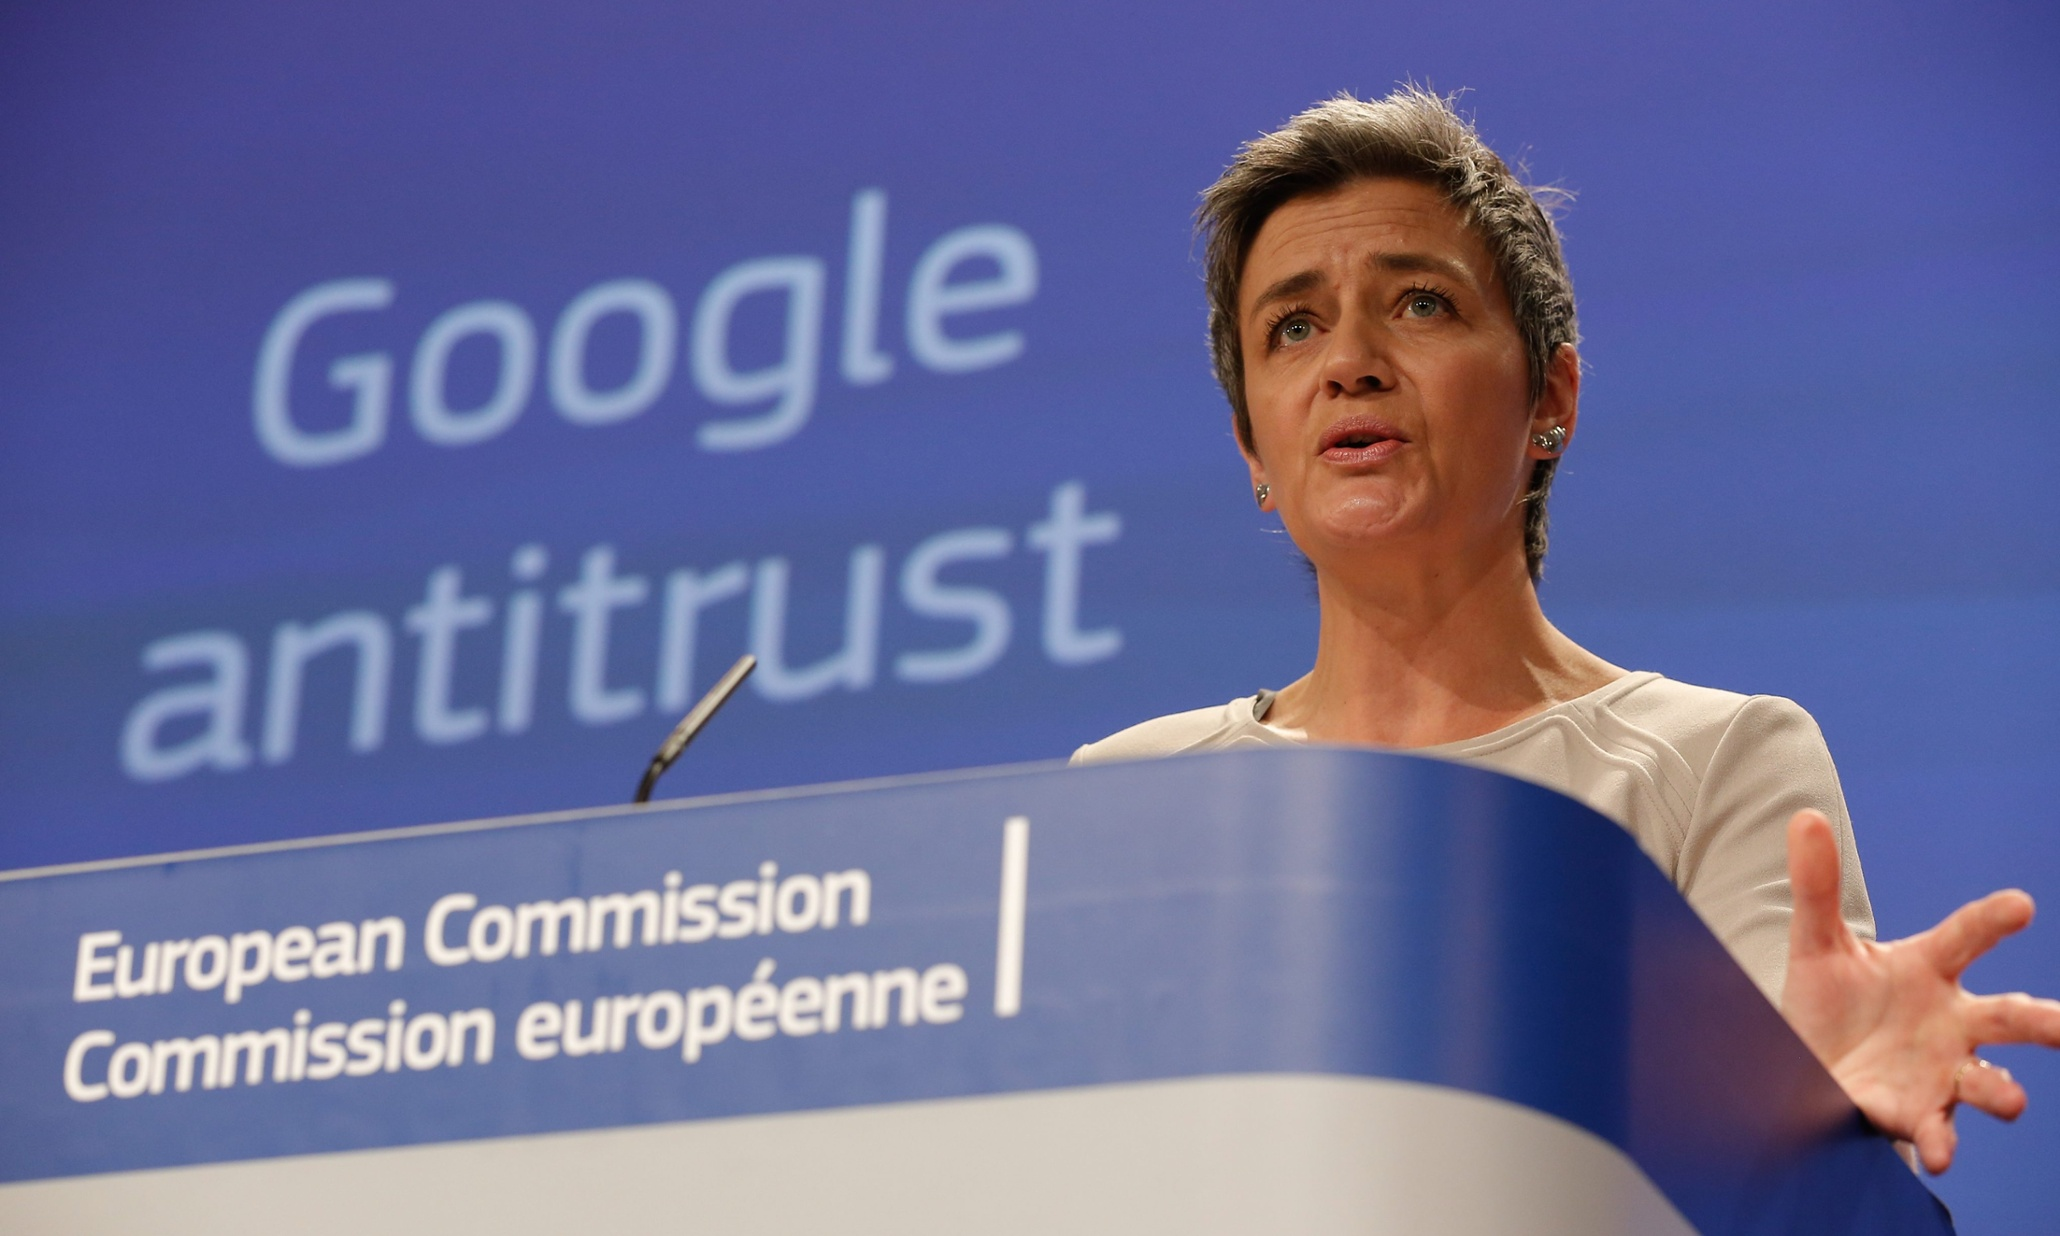 Europe is targeting Google under antitrust laws but missing the bigger picture